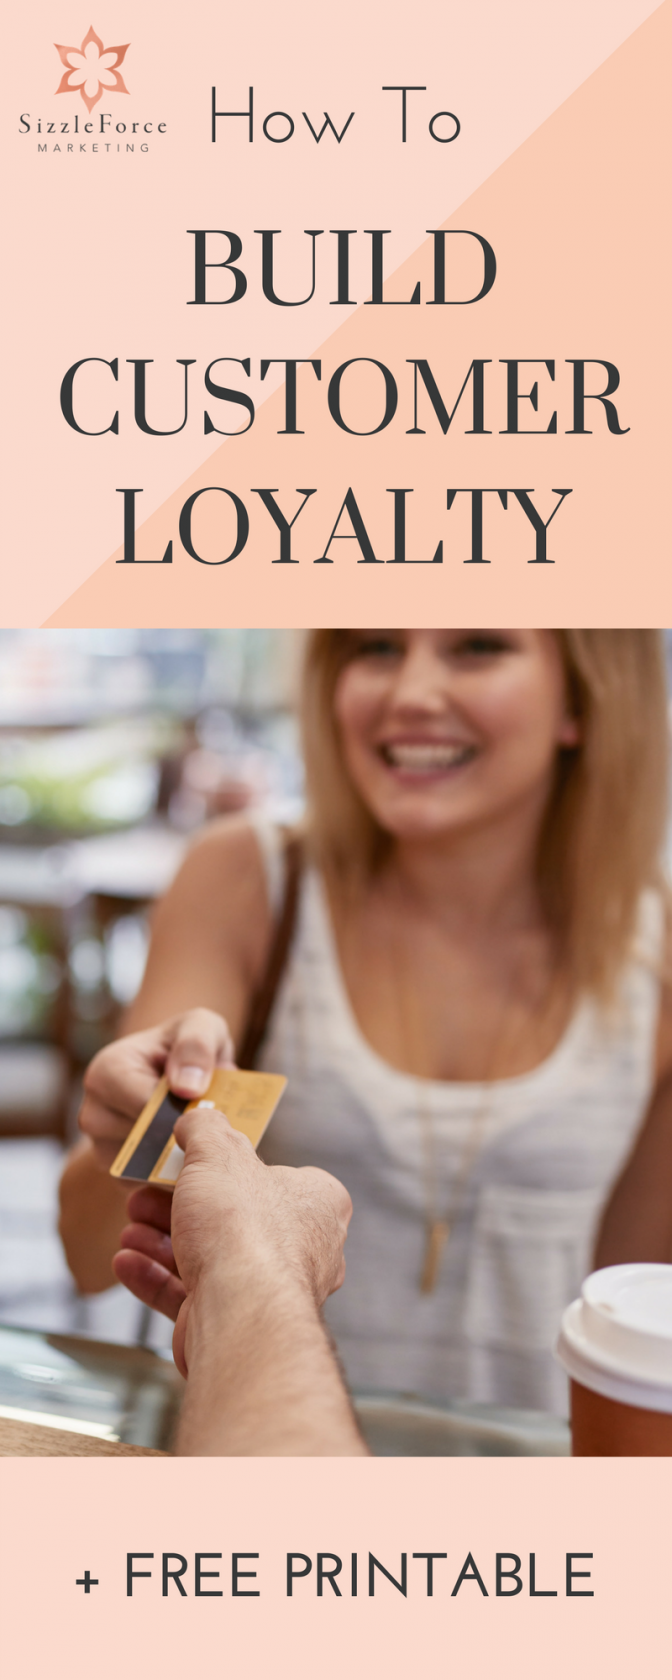 HOW TO BUILD CUSTOMER LOYALTY-3